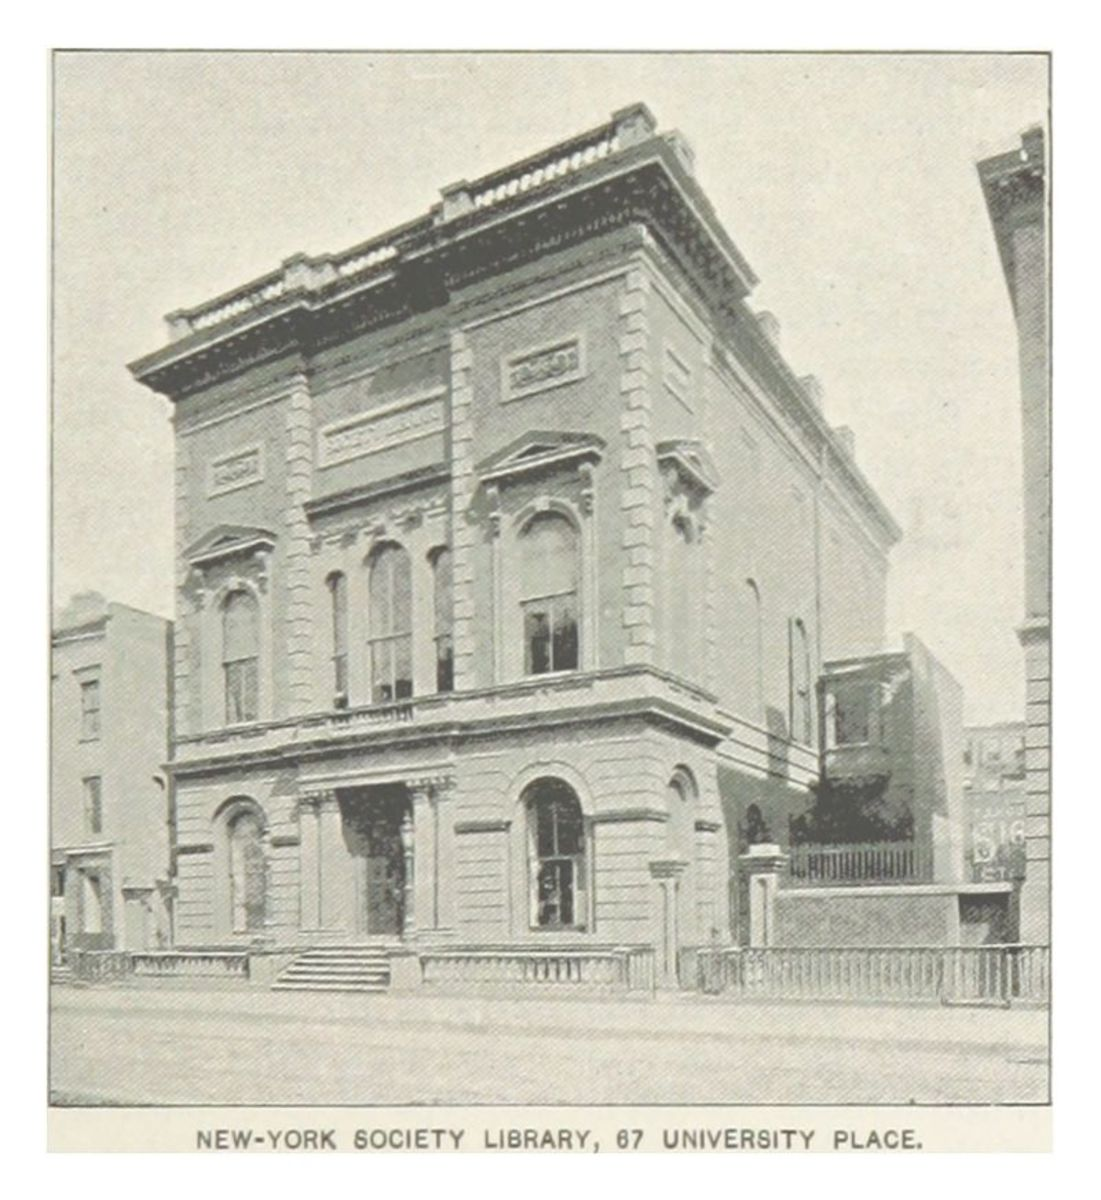 Original location of the New York Society Library, photo from 1893